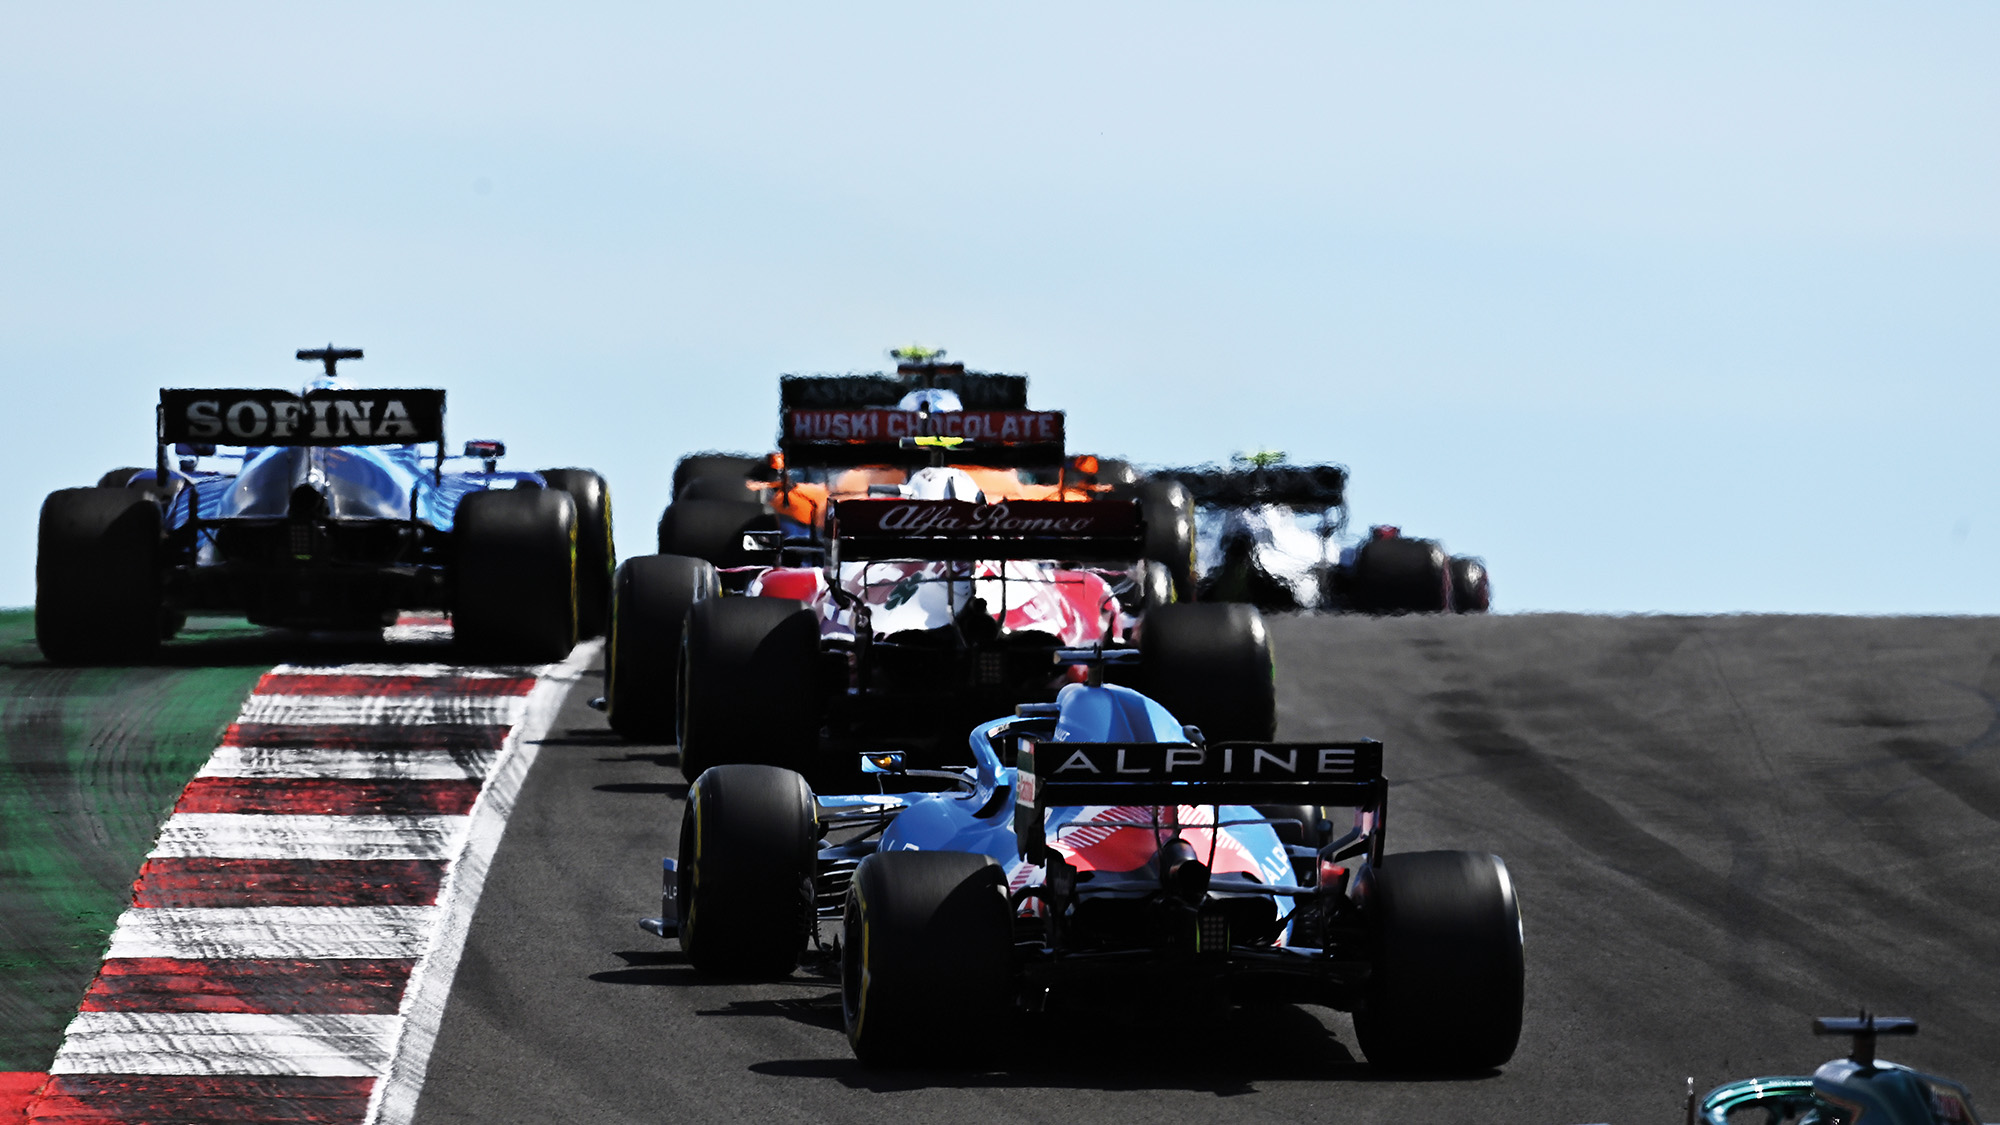 Rear view of cars at the 2021 Portuguese Grand Prix